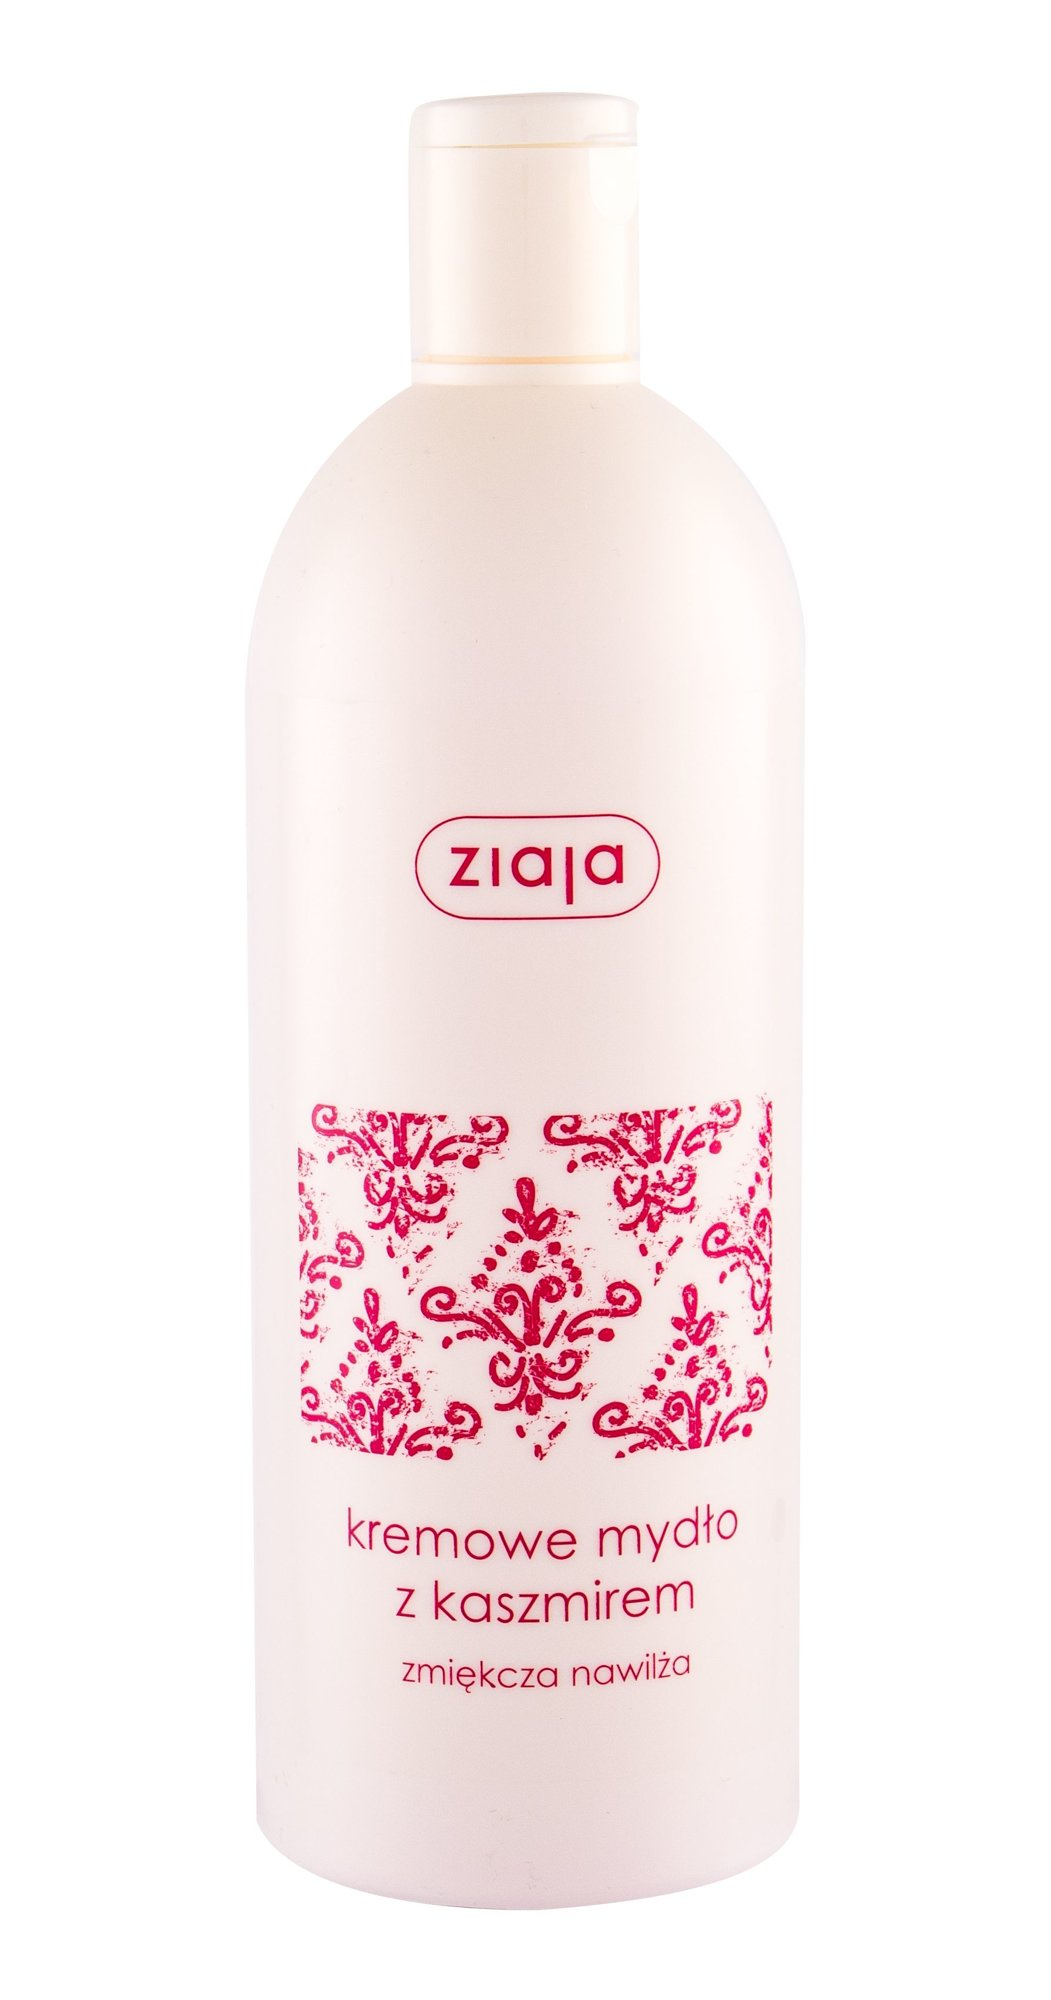 Ziaja Cashmere Creamy Shower Soap, tusfürdő gél 500ml